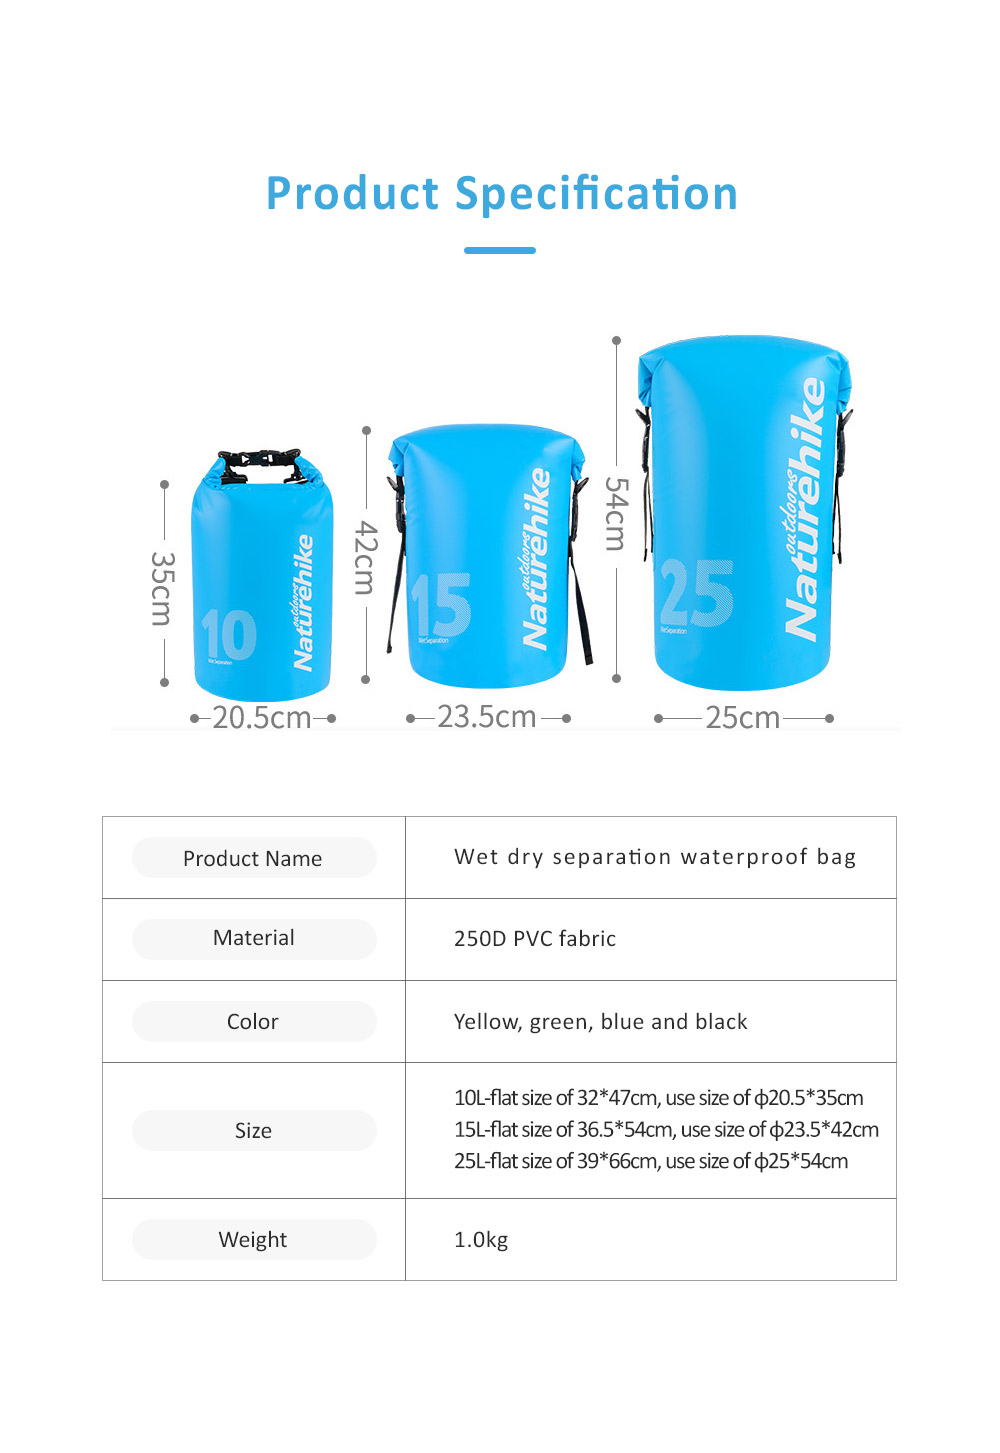 Wet Dry Separation Waterproof Bag for Outdoor Activities, Floating, Swimming, Diving, Beach Used Showerproof Large-capacity Storage Bag 7